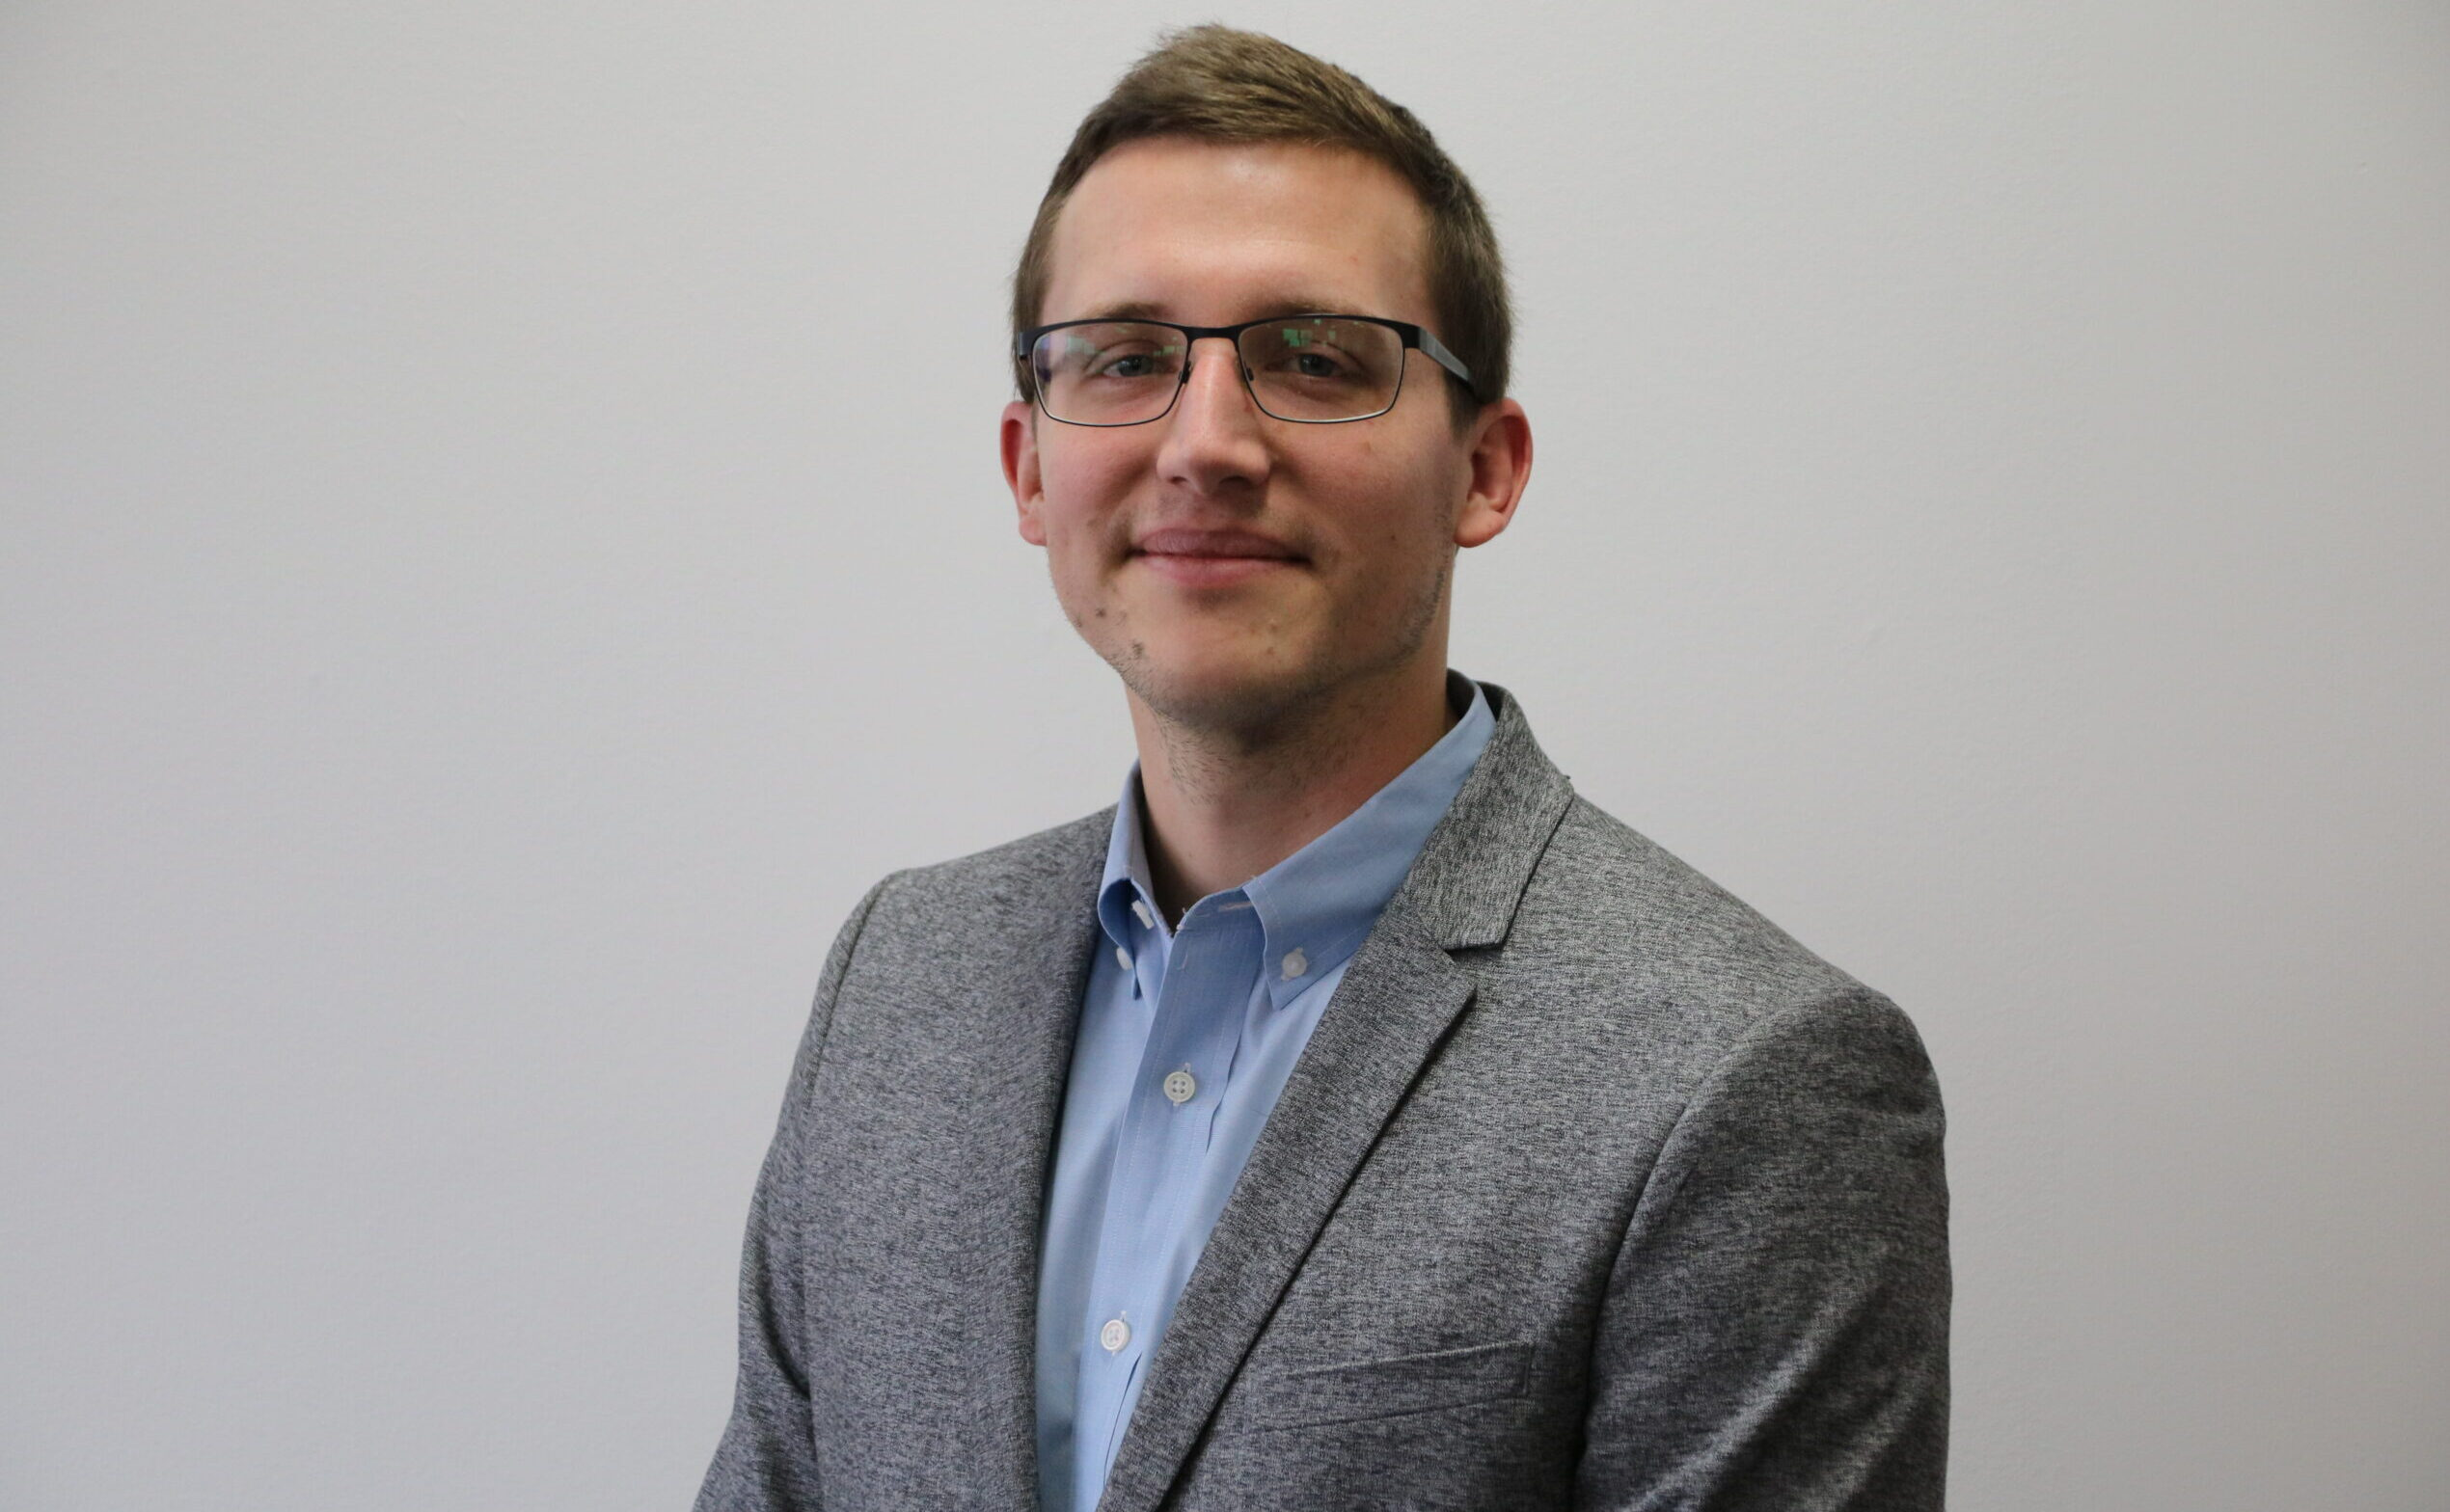 Congratulations to Michael New, our newest Professional Engineer!